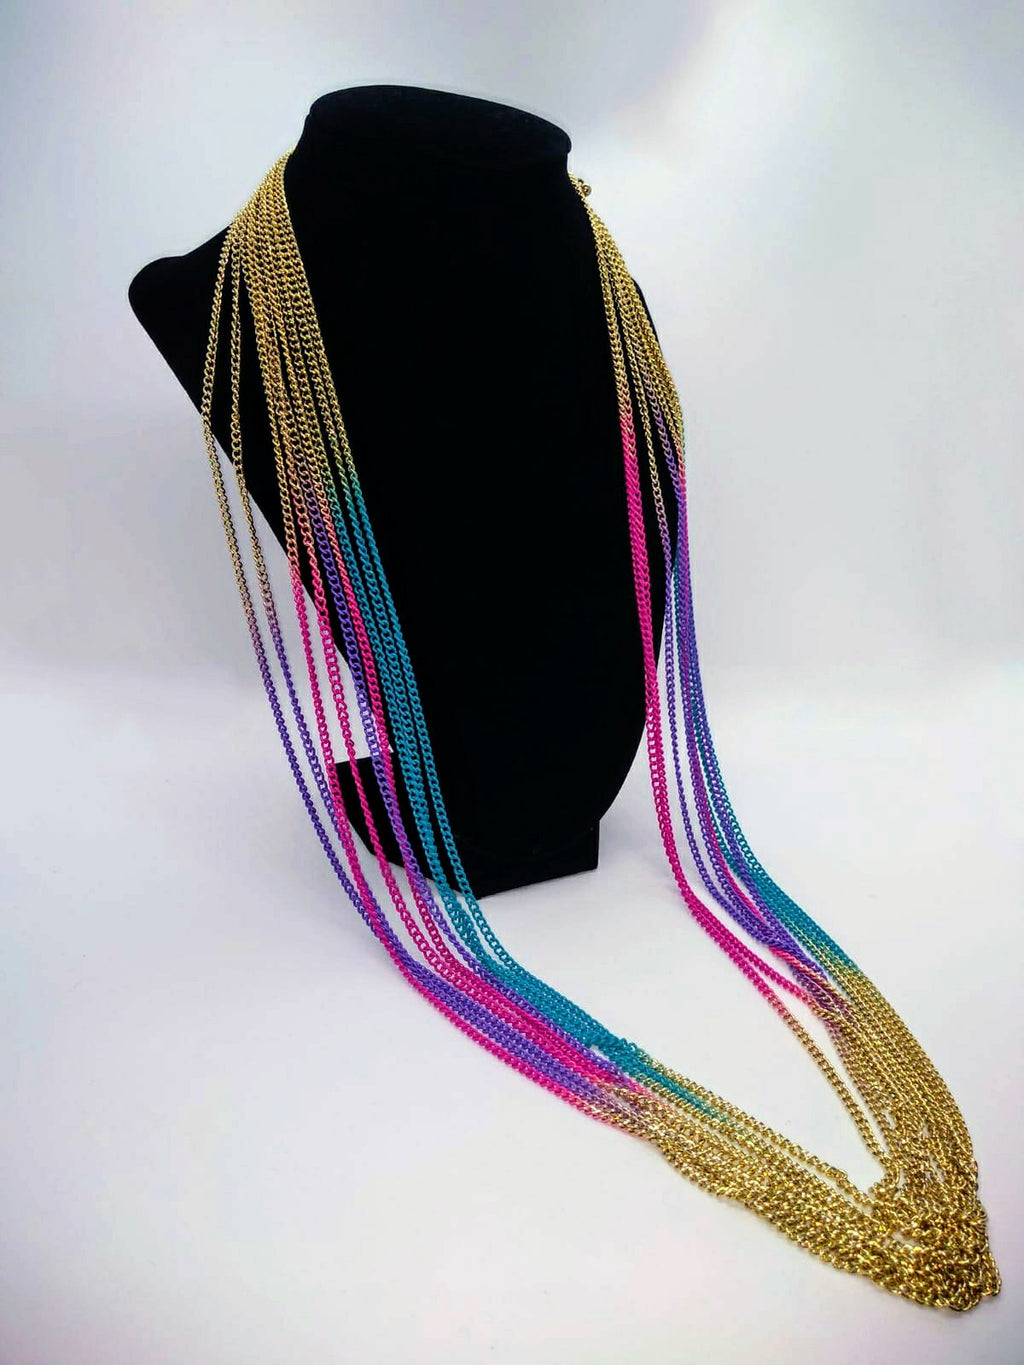 gold multi strand necklace with purple, turquoise, and pink accents draped on black stand